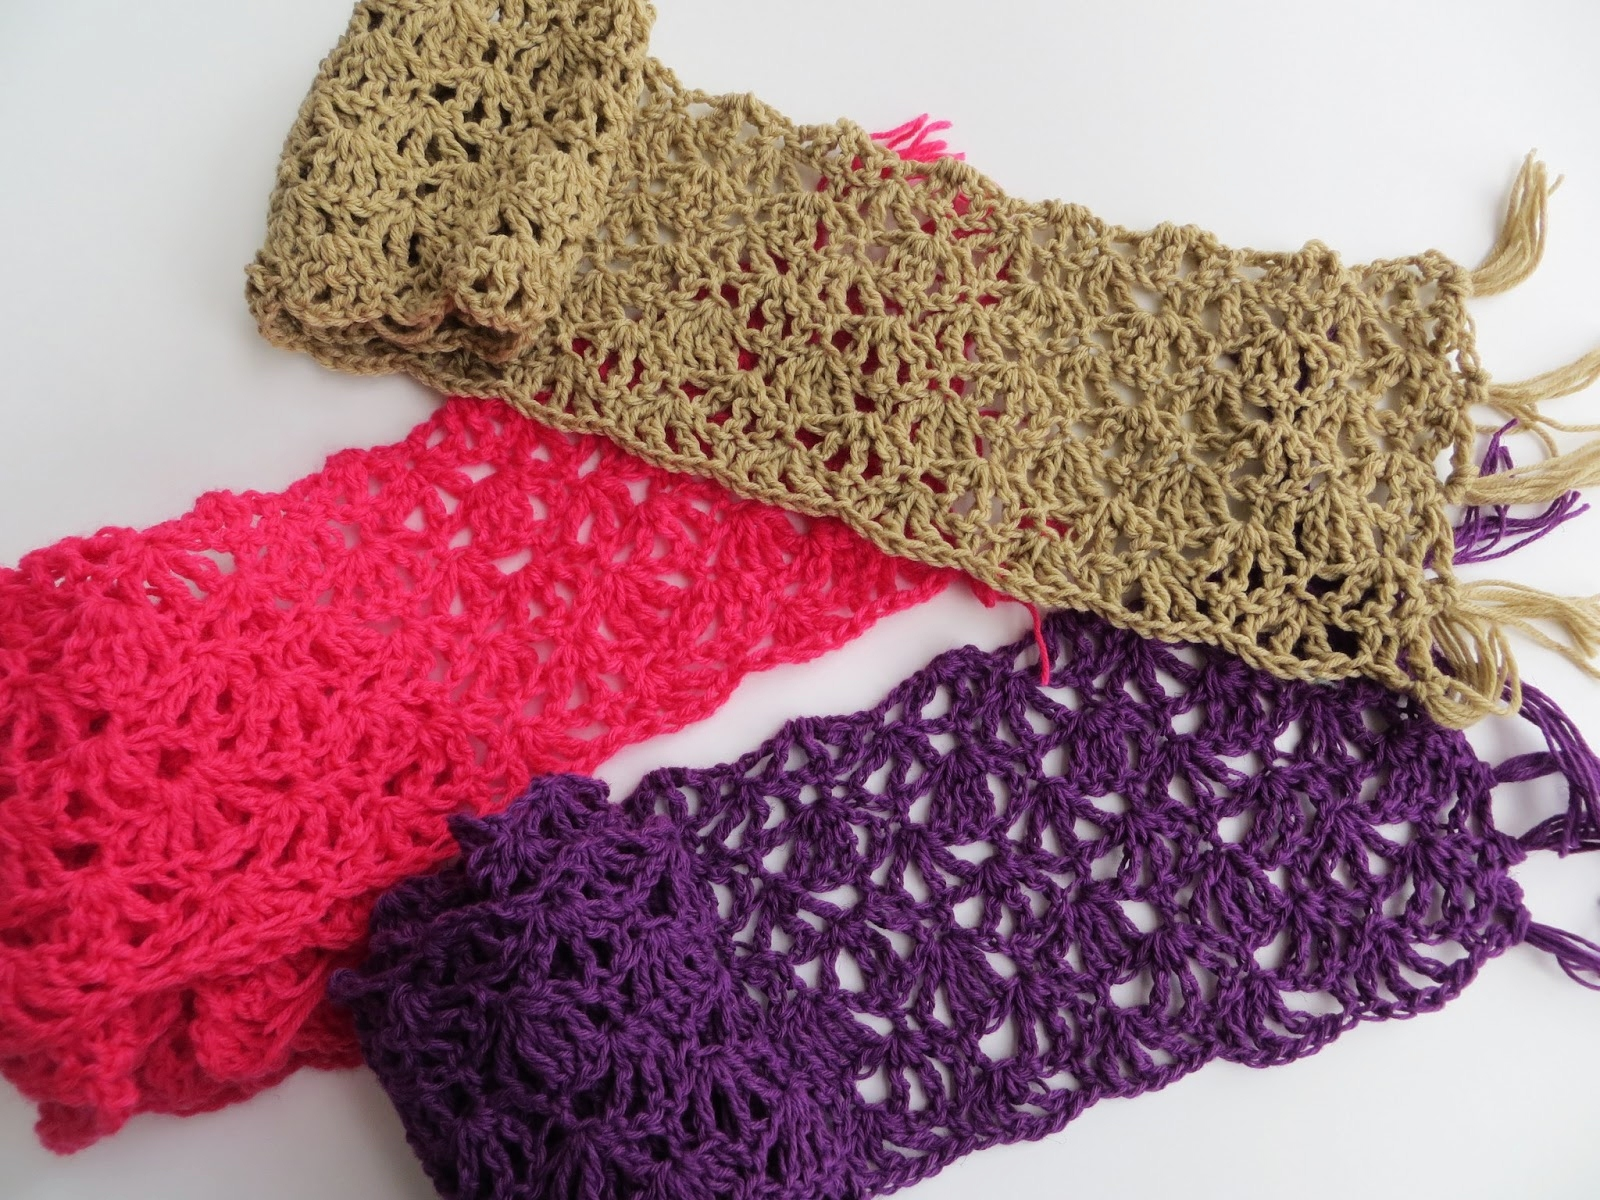 Crochet Patterns Images : Crochet Dreamz: Alana Lacy Scarf, Free Crochet Pattern